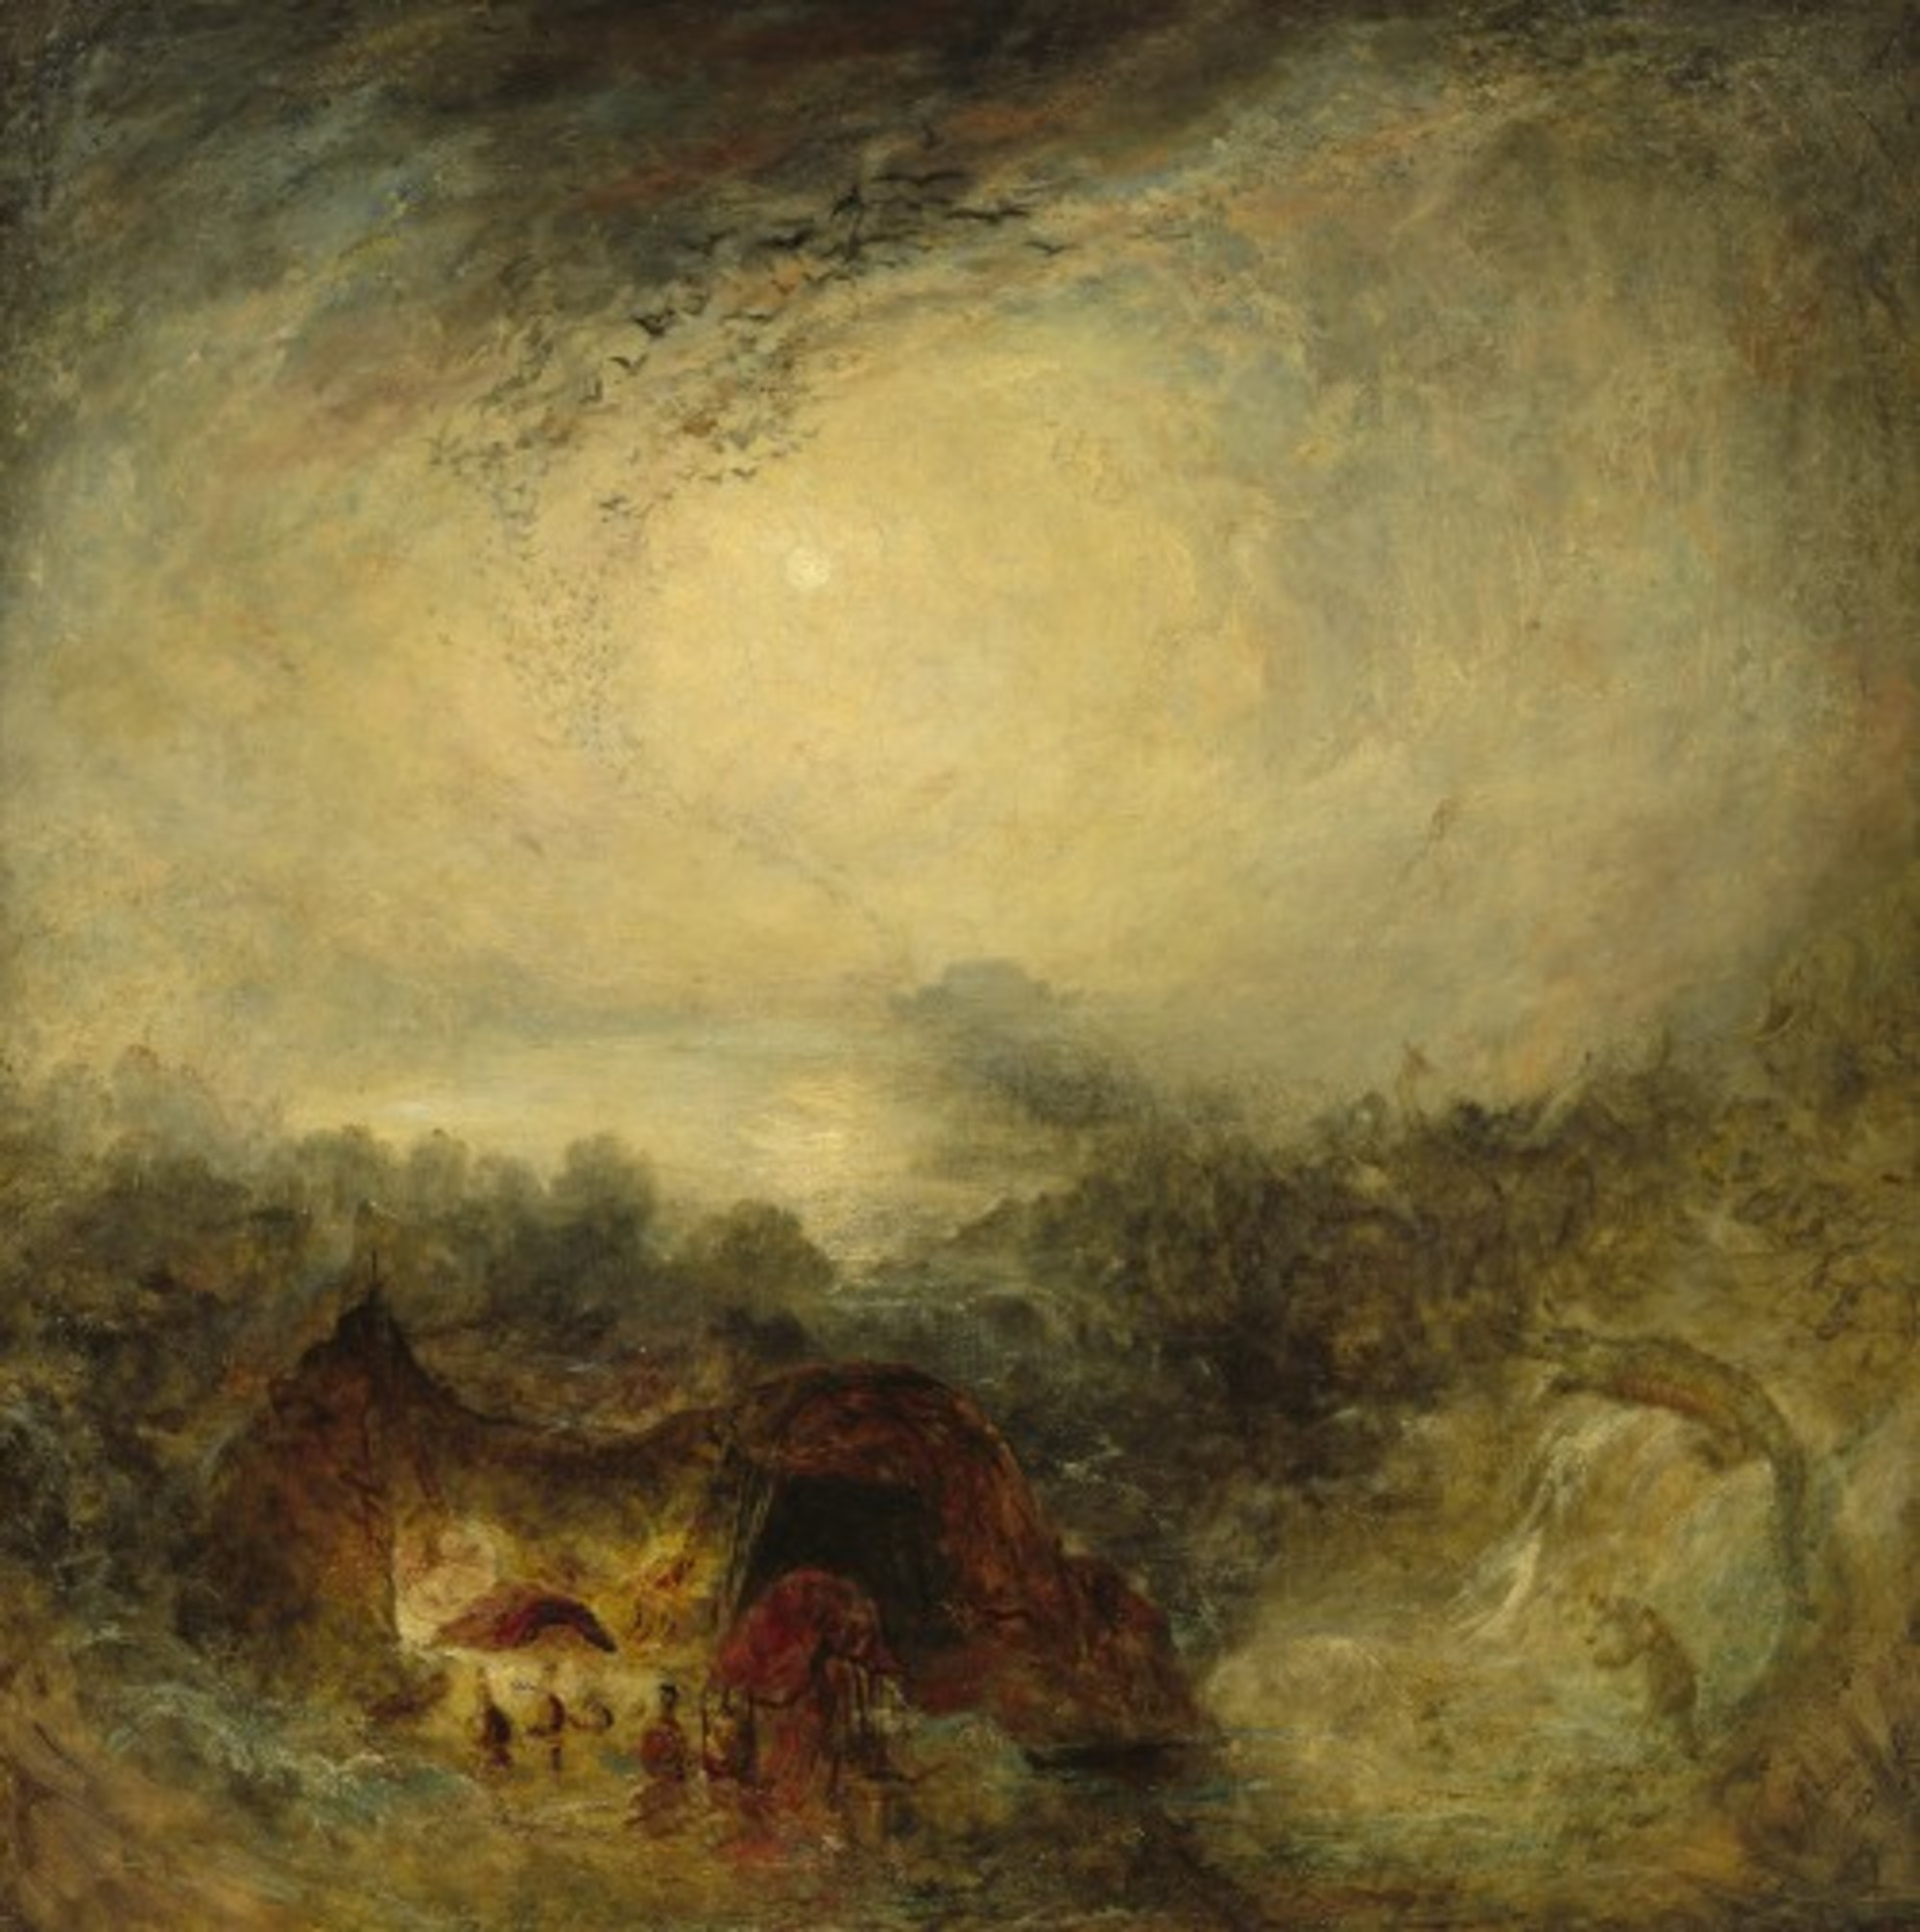 Joseph_Mallord_William_Turner_The_Evening_of_the_Deluge_c._1843_NGA_46064.jpg